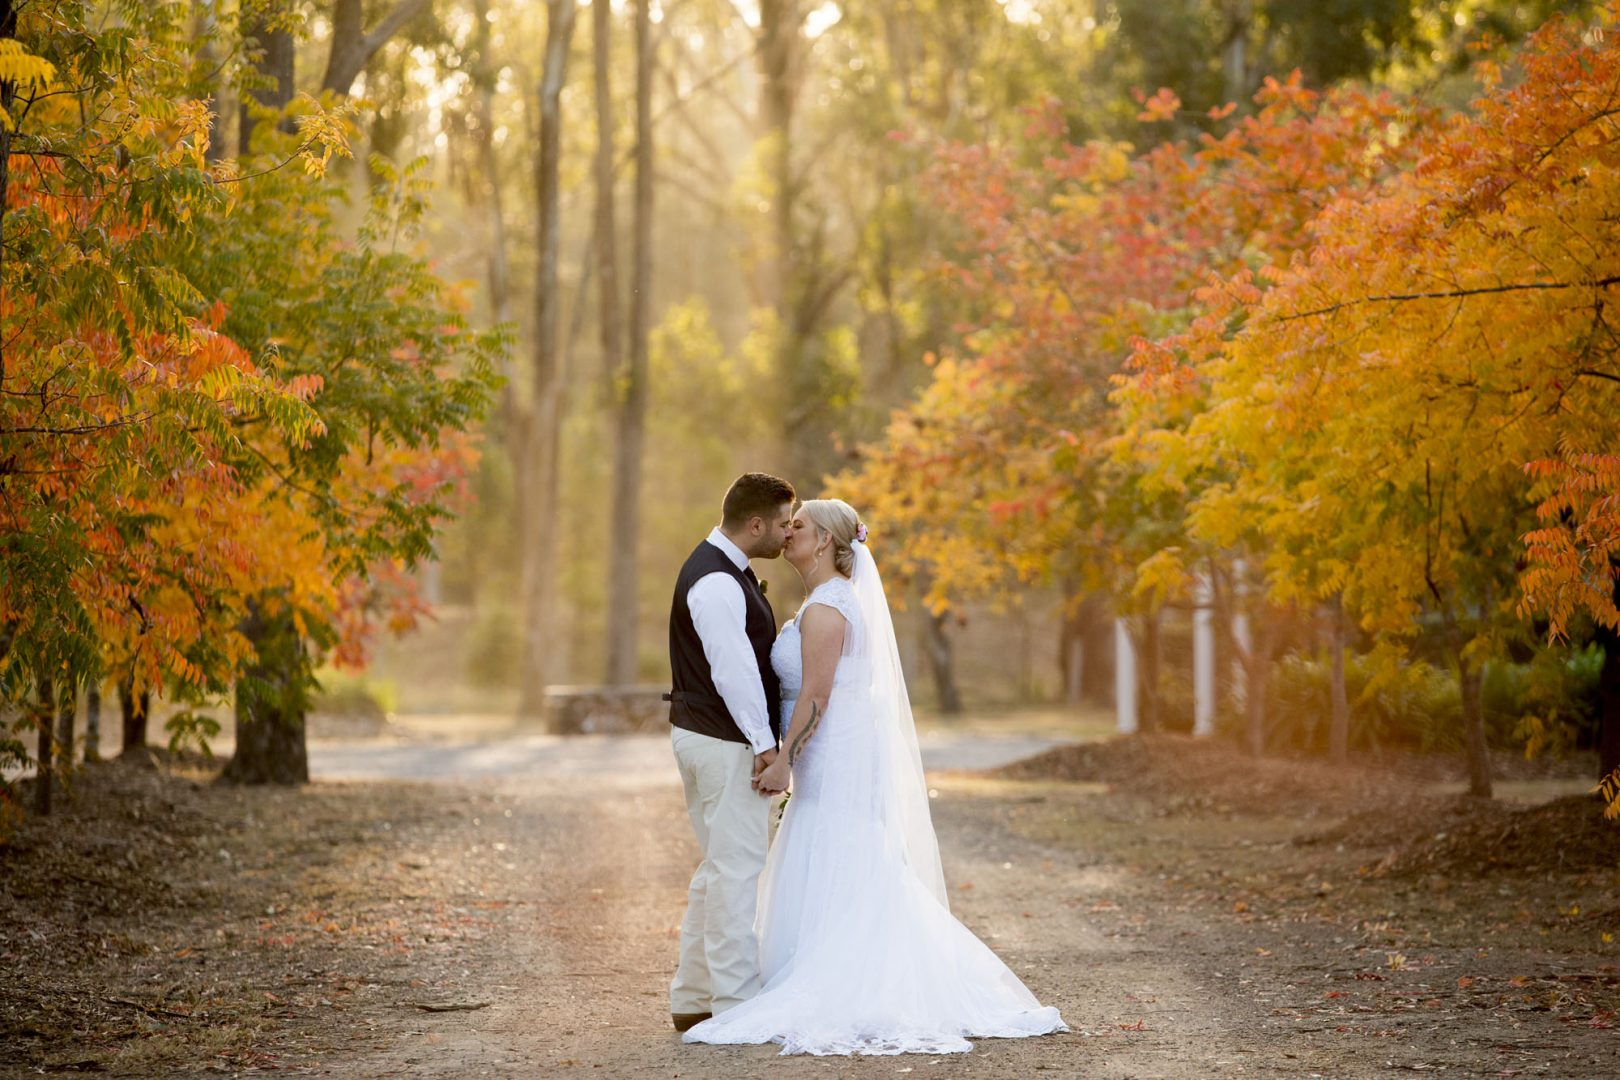 Sarah and Hayden - Autumn Wedding 3L Photography